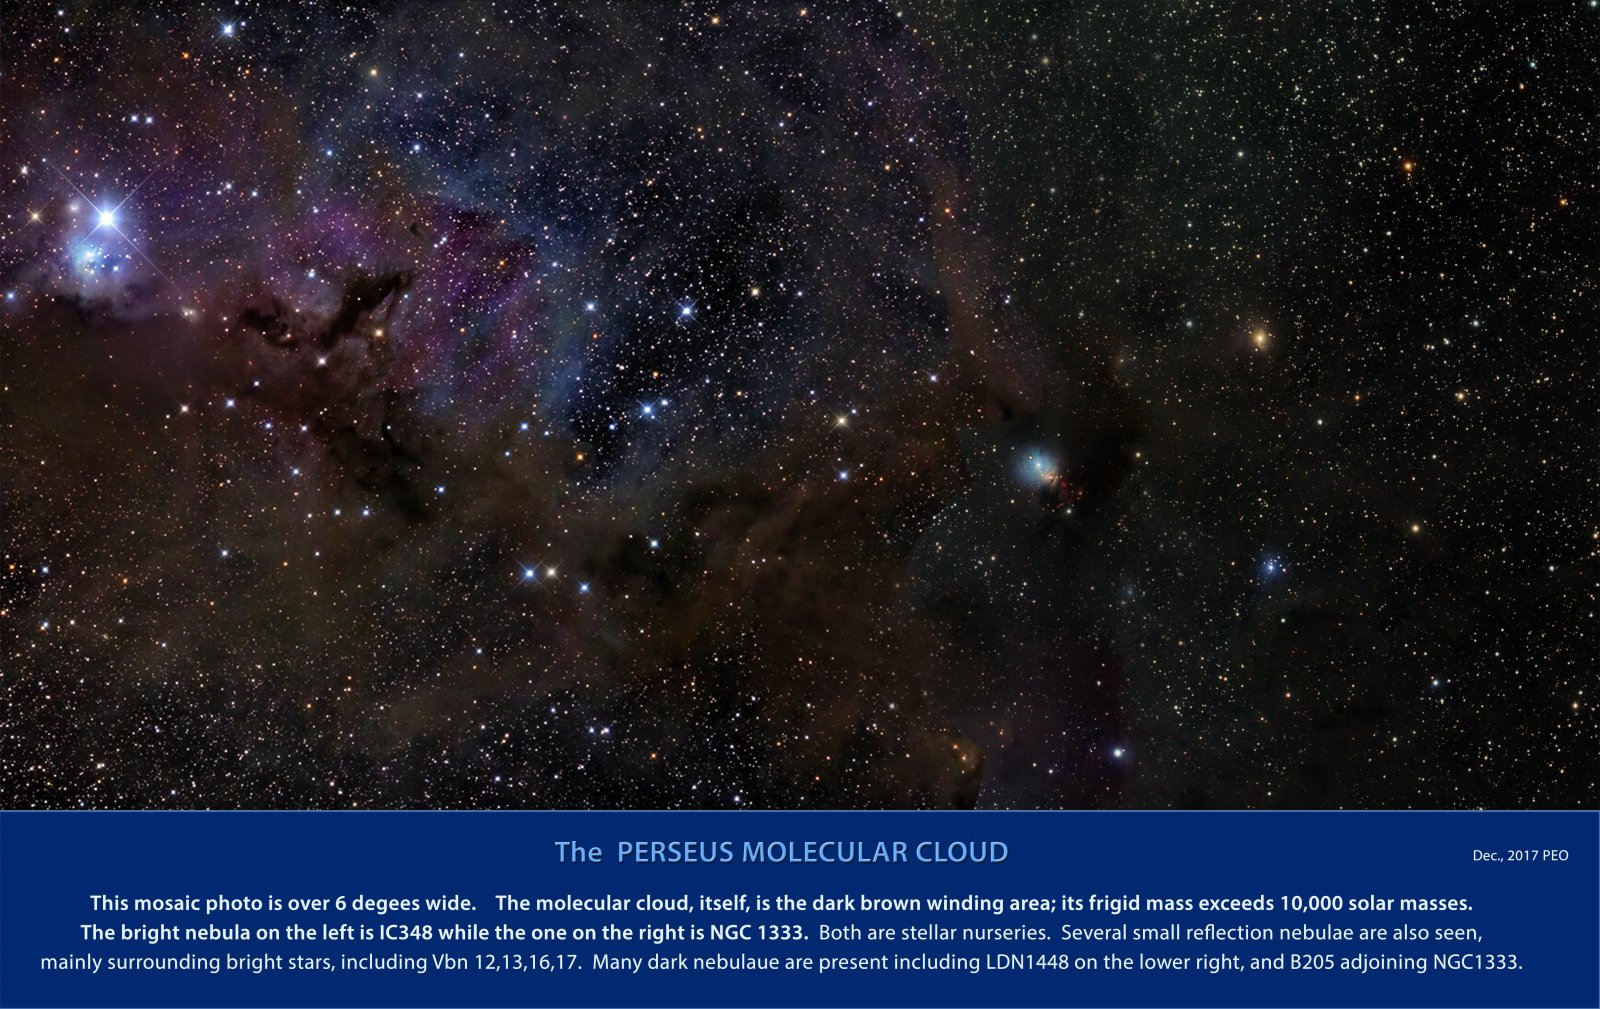 The Perseus Molecular Cloud